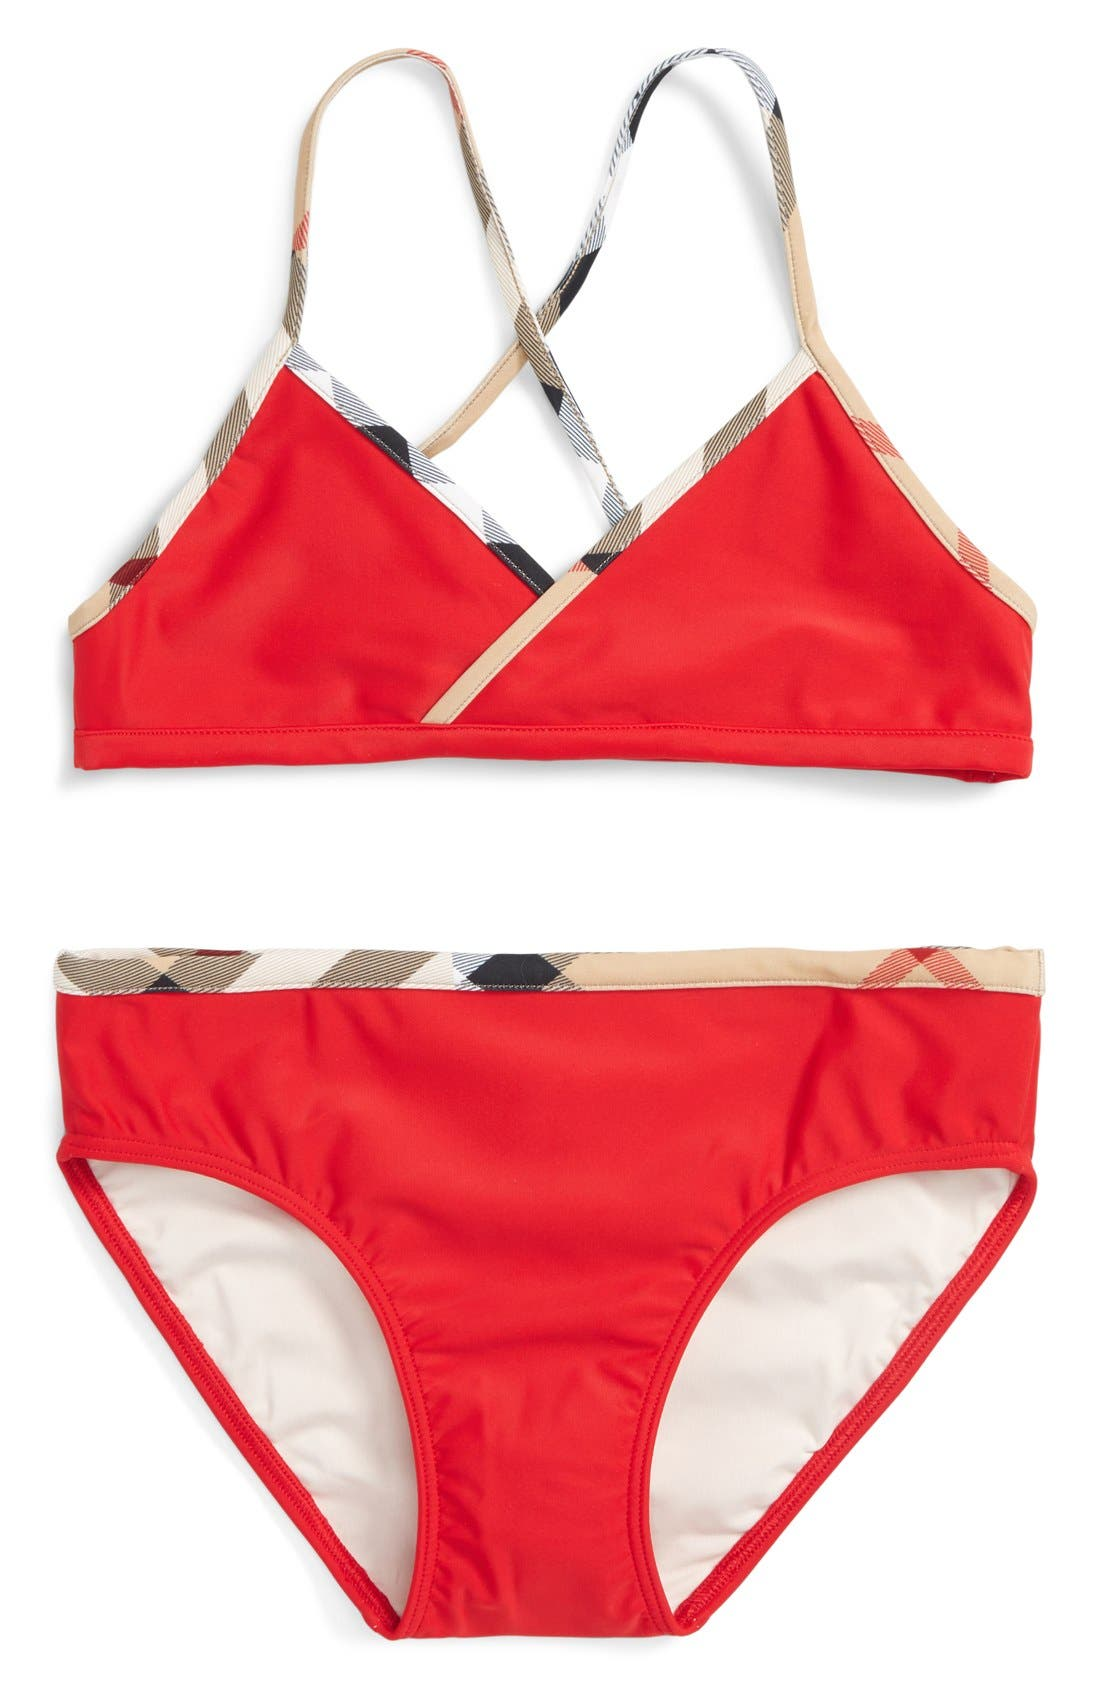 'Crosby' Two-Piece Swimsuit,                             Main thumbnail 1, color,                             Poppy Red